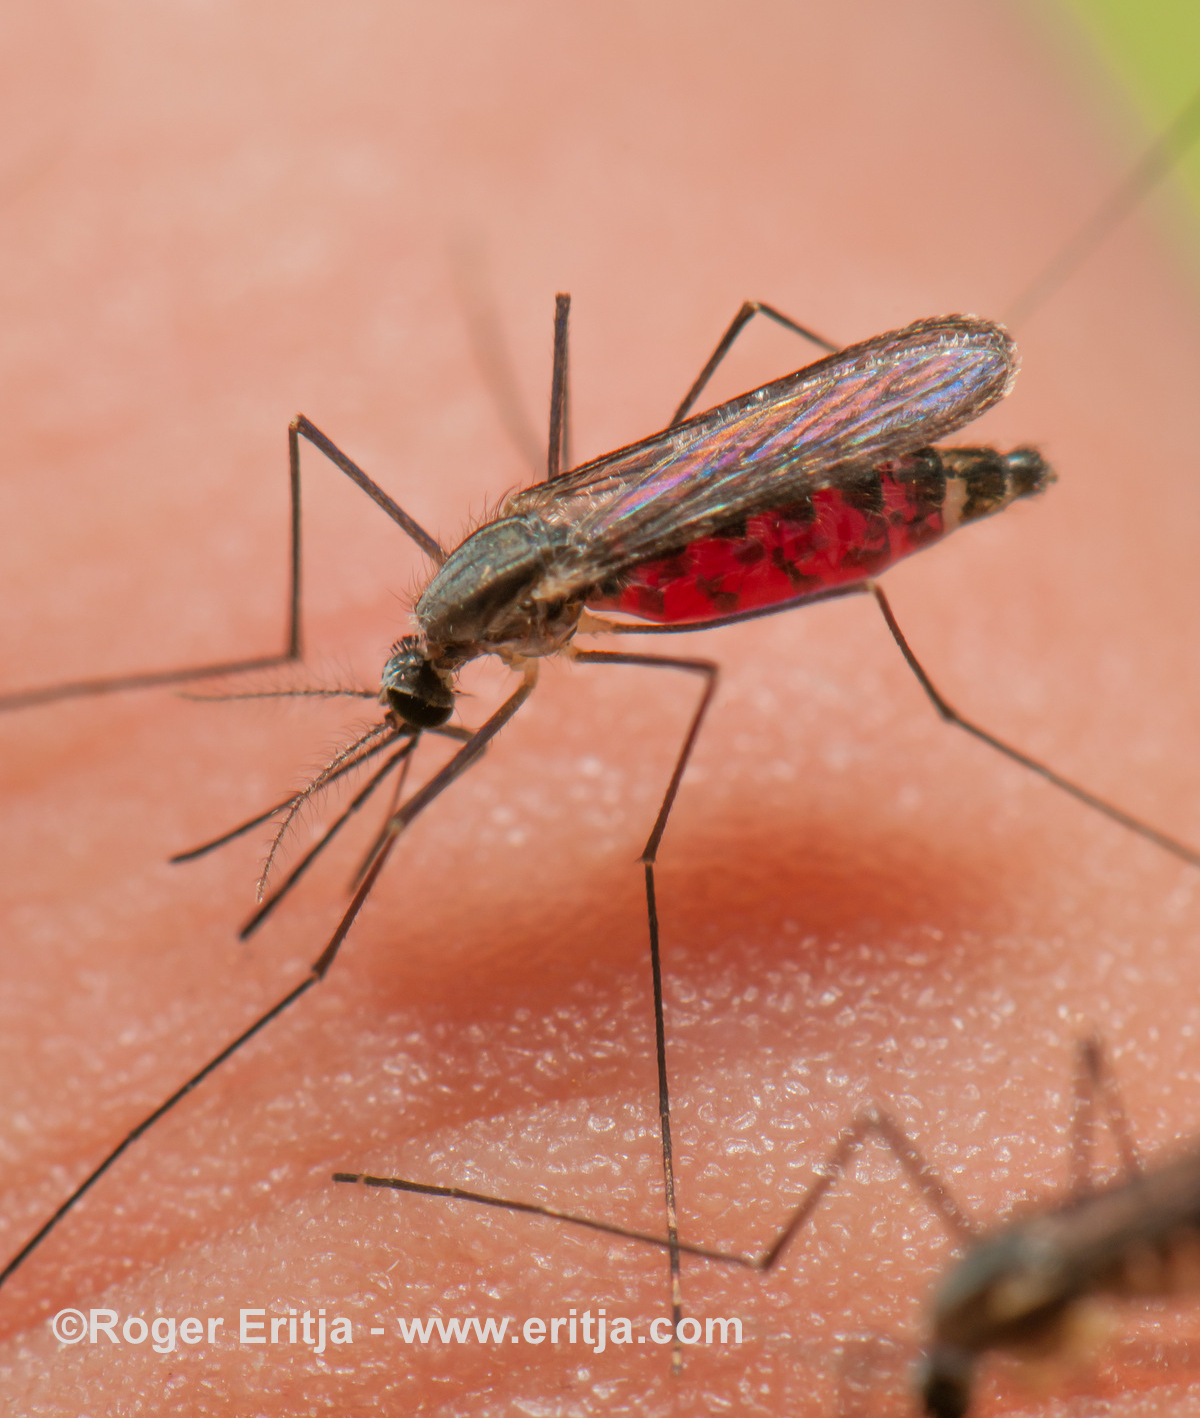 Anopheles plumbeus mosquito female biting on human skin